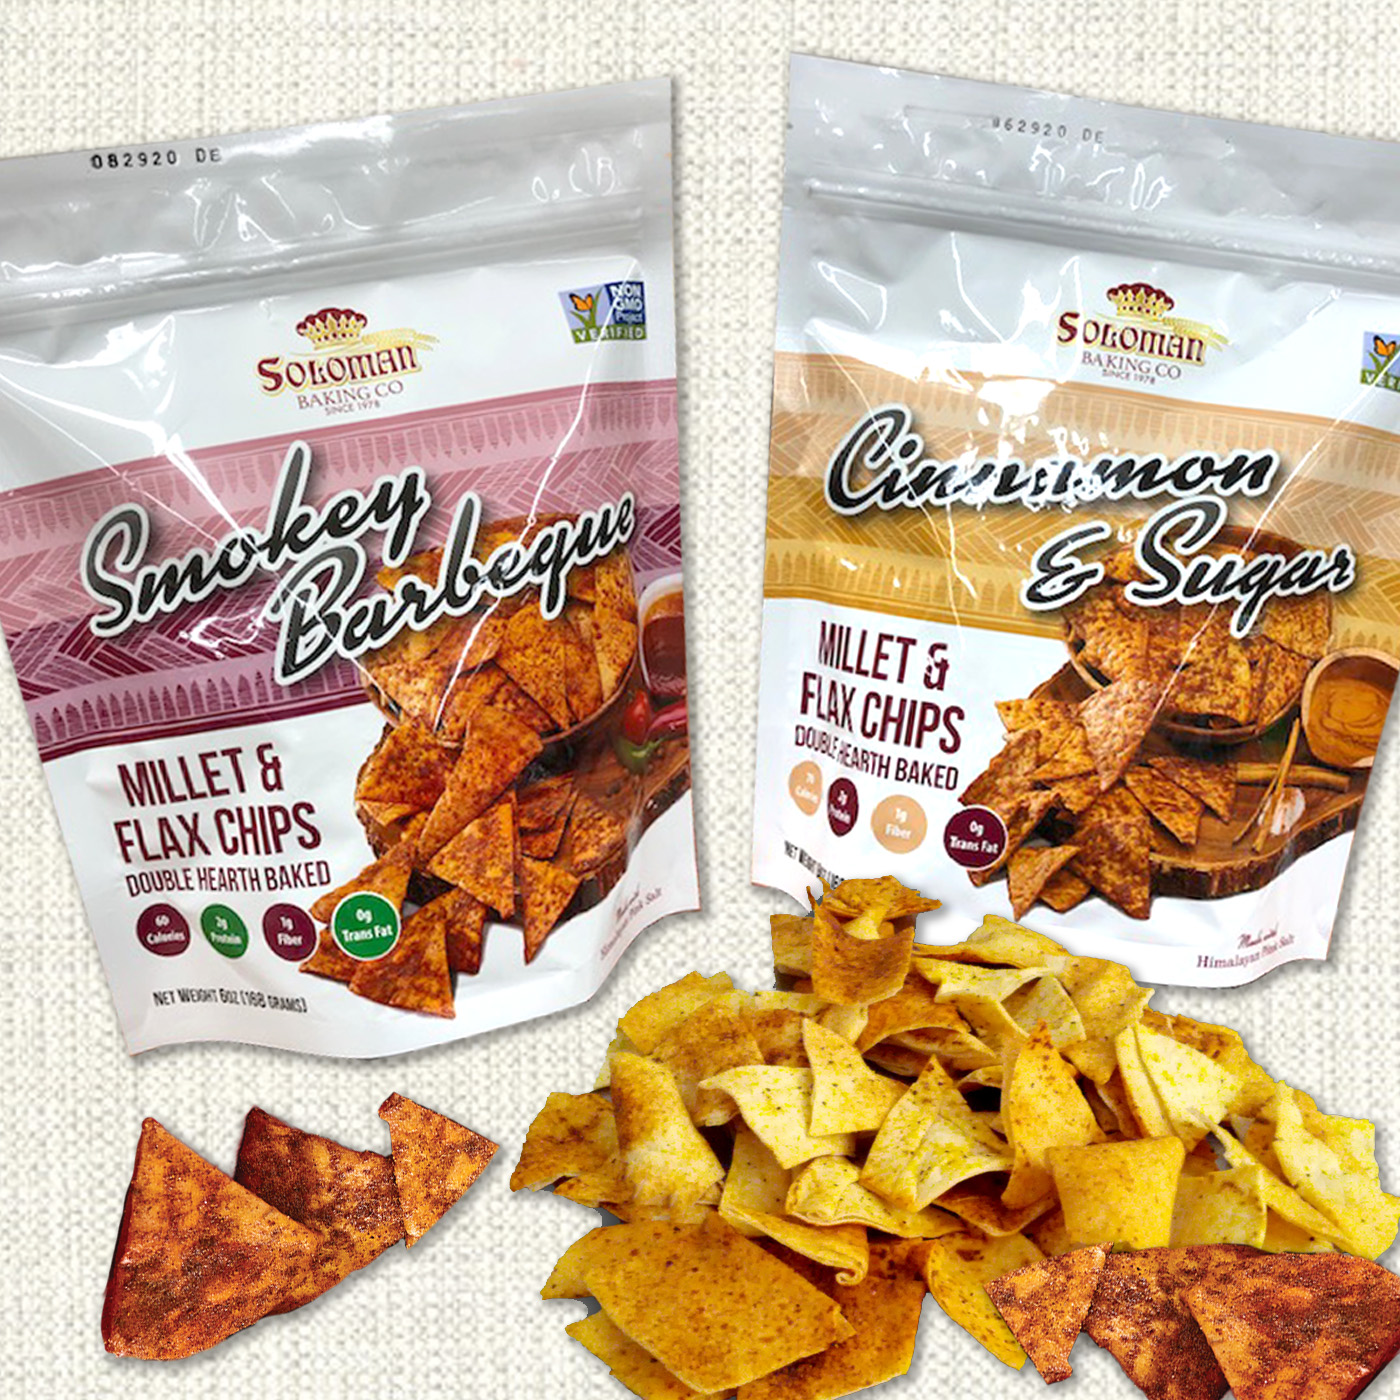 Flax chips packaging